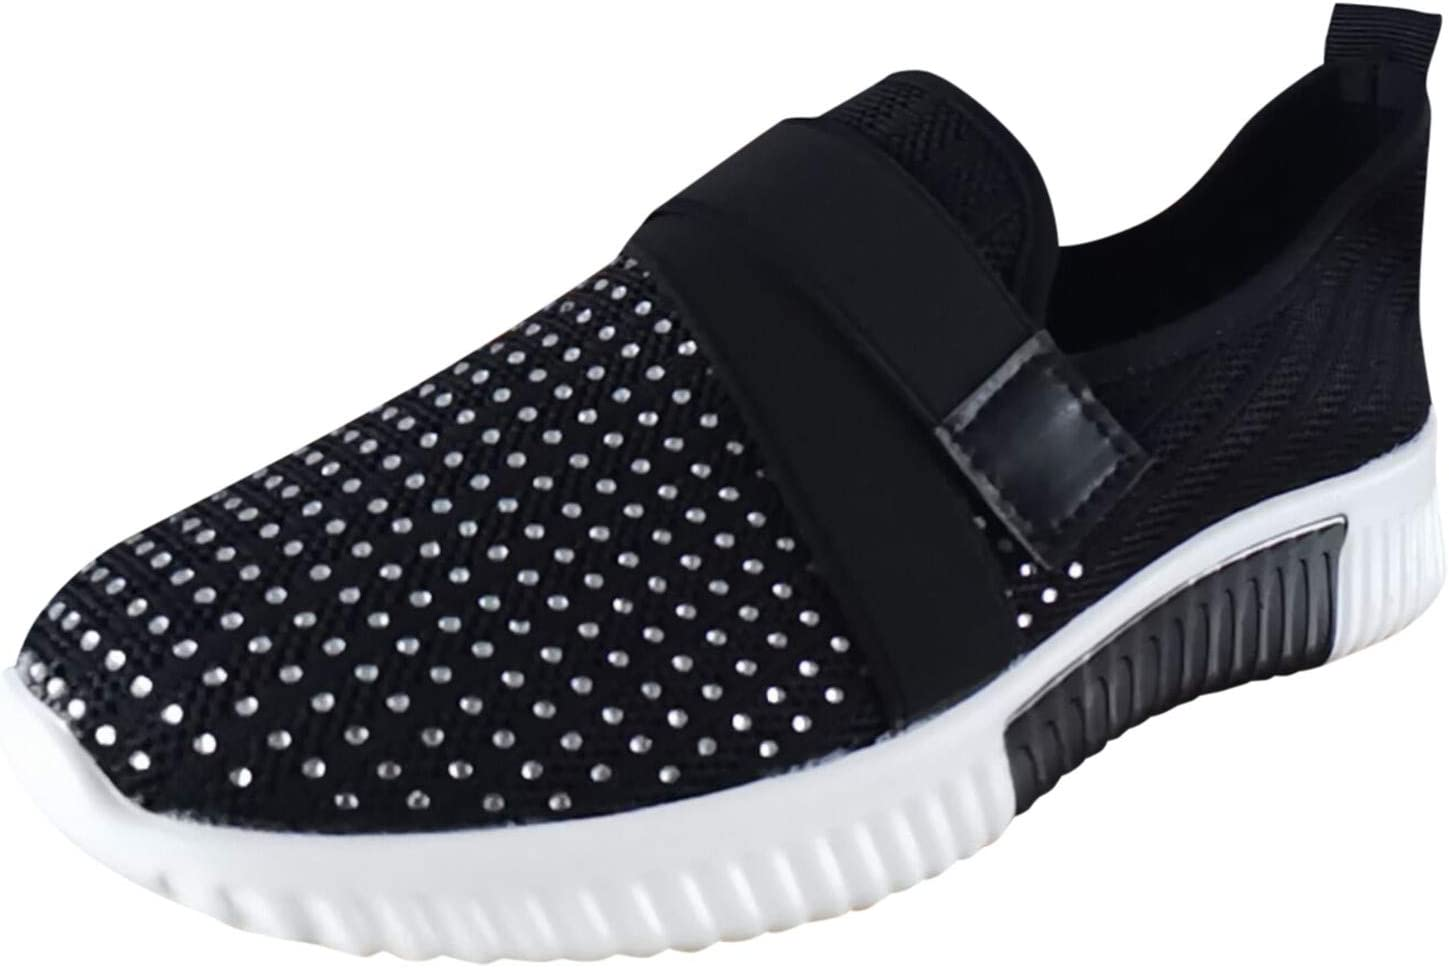 BFSAUHA Shoes Women Casual for National uniform free shipping Canvas Men Denver Mall Loafer